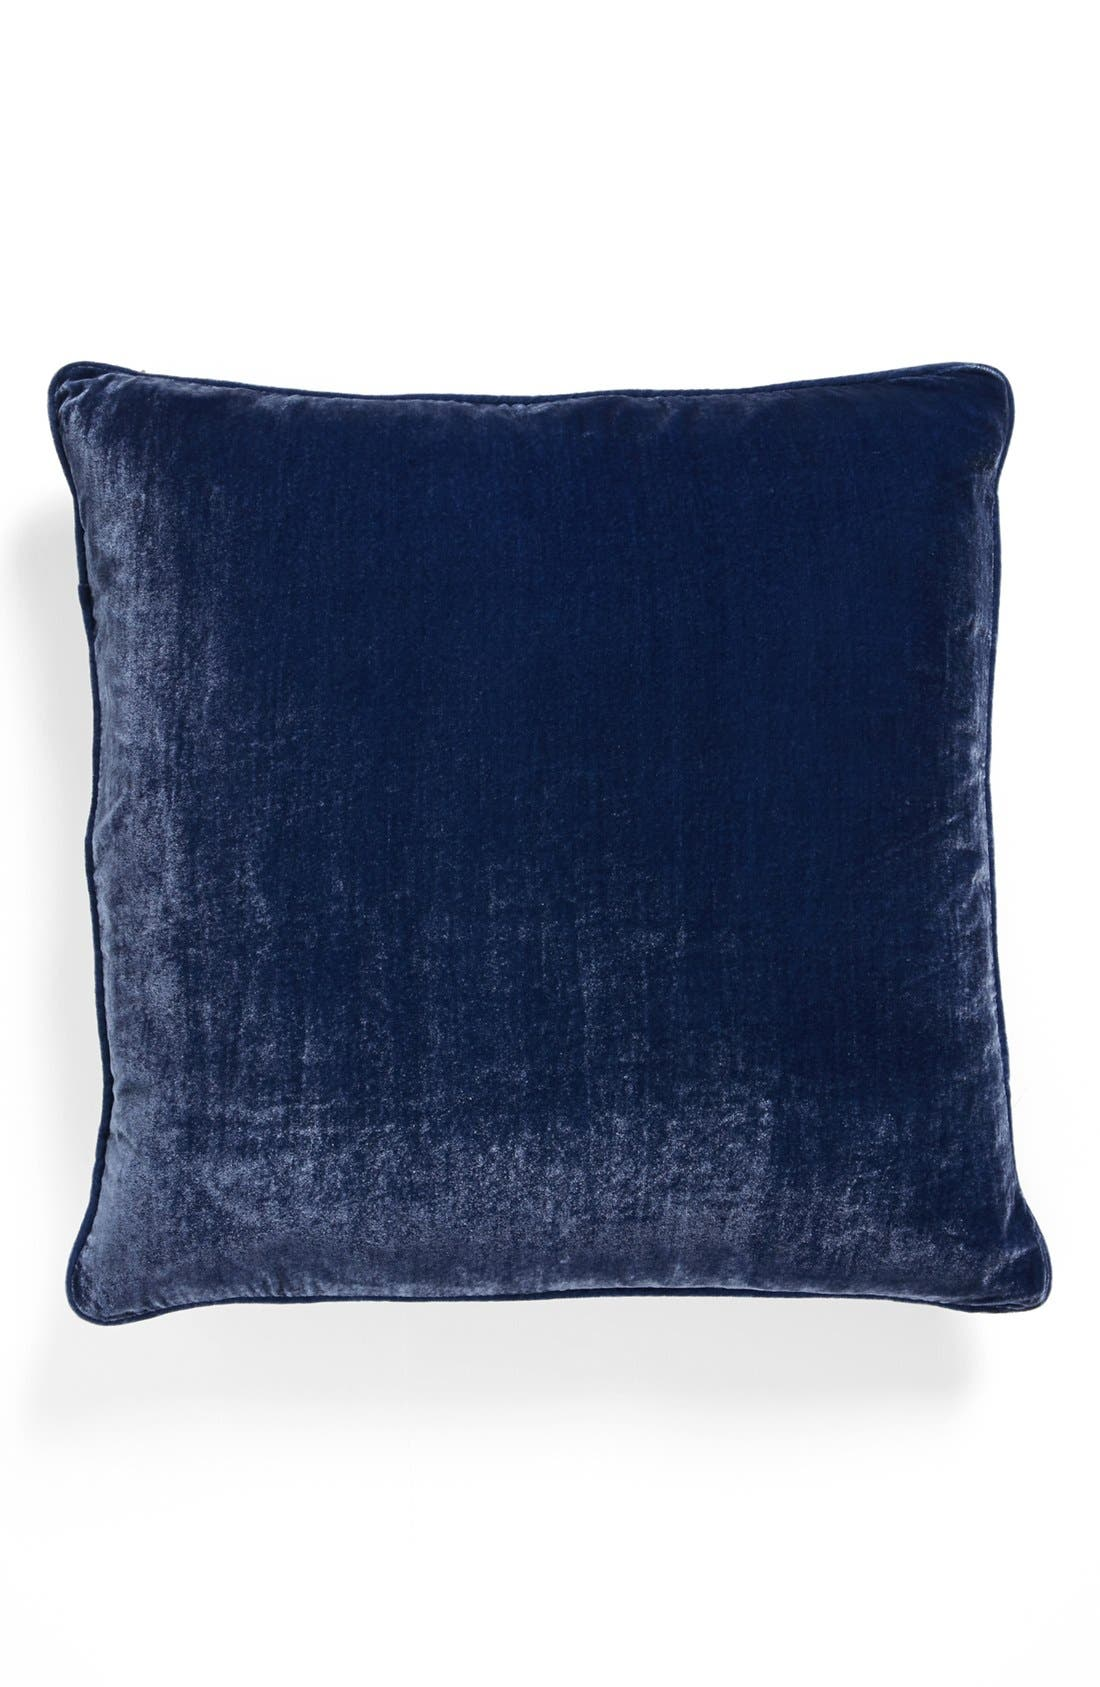 Alternate Image 1 Selected - Poetic Wanderlust 'Brianna' Velvet Pillow